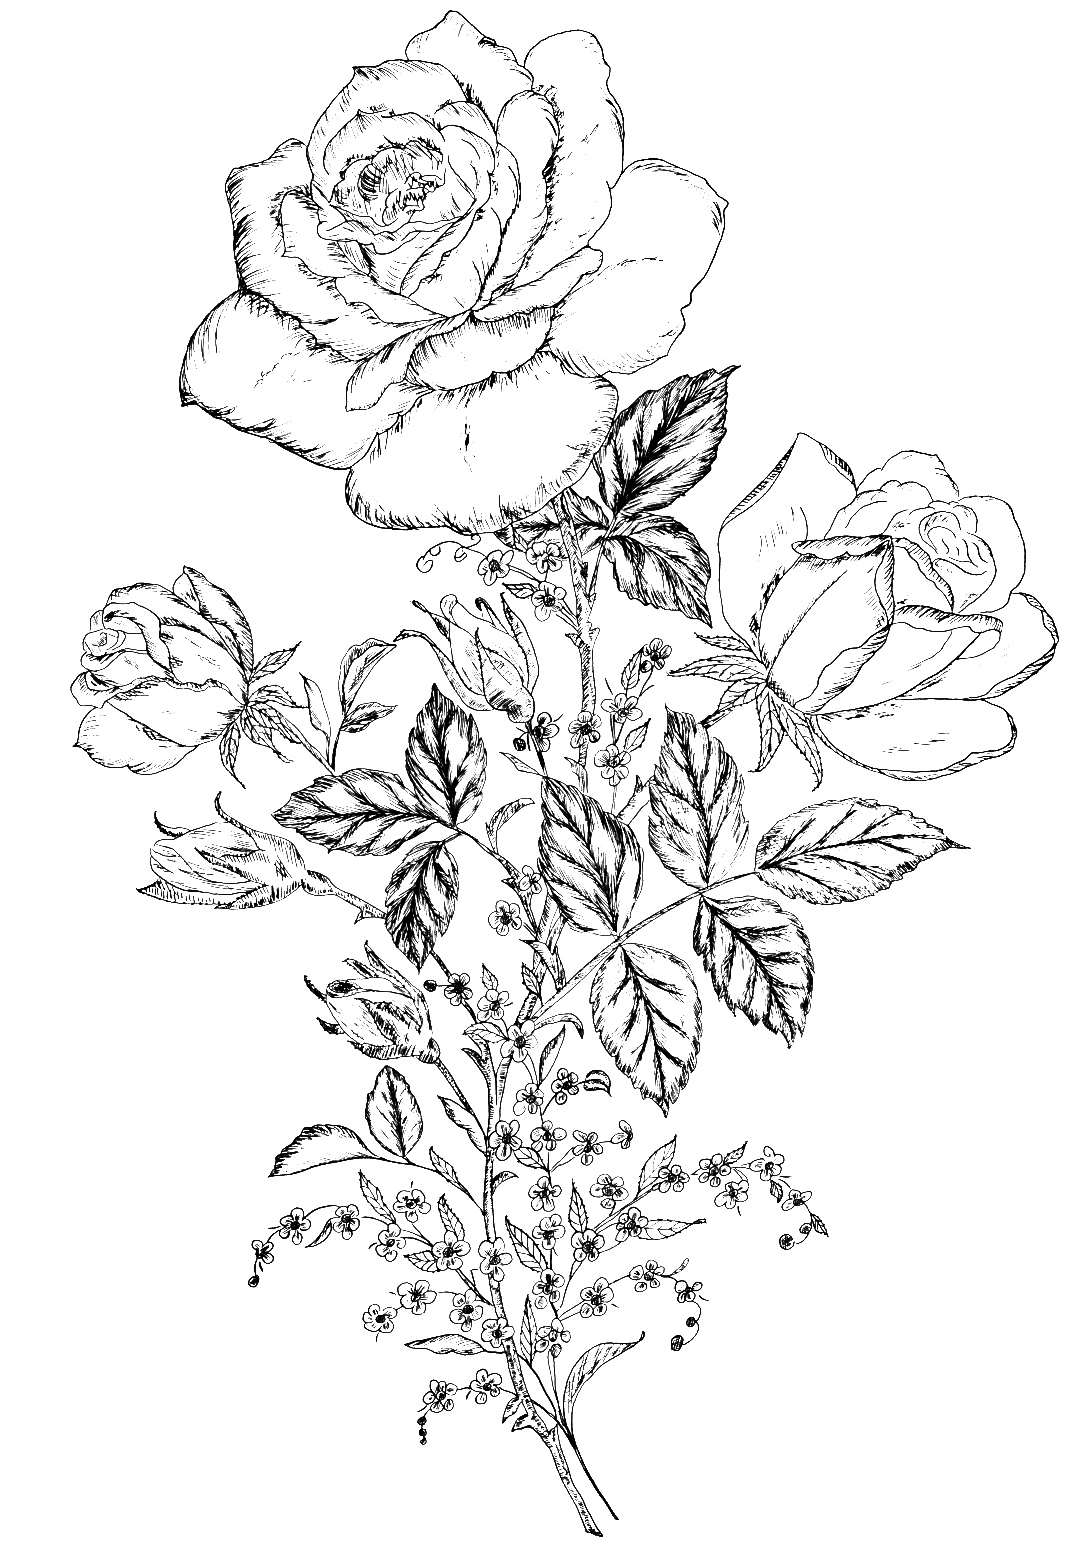 flowerdesign4.jpg (1077×1557) | Woodburning Pyrography and designs ...